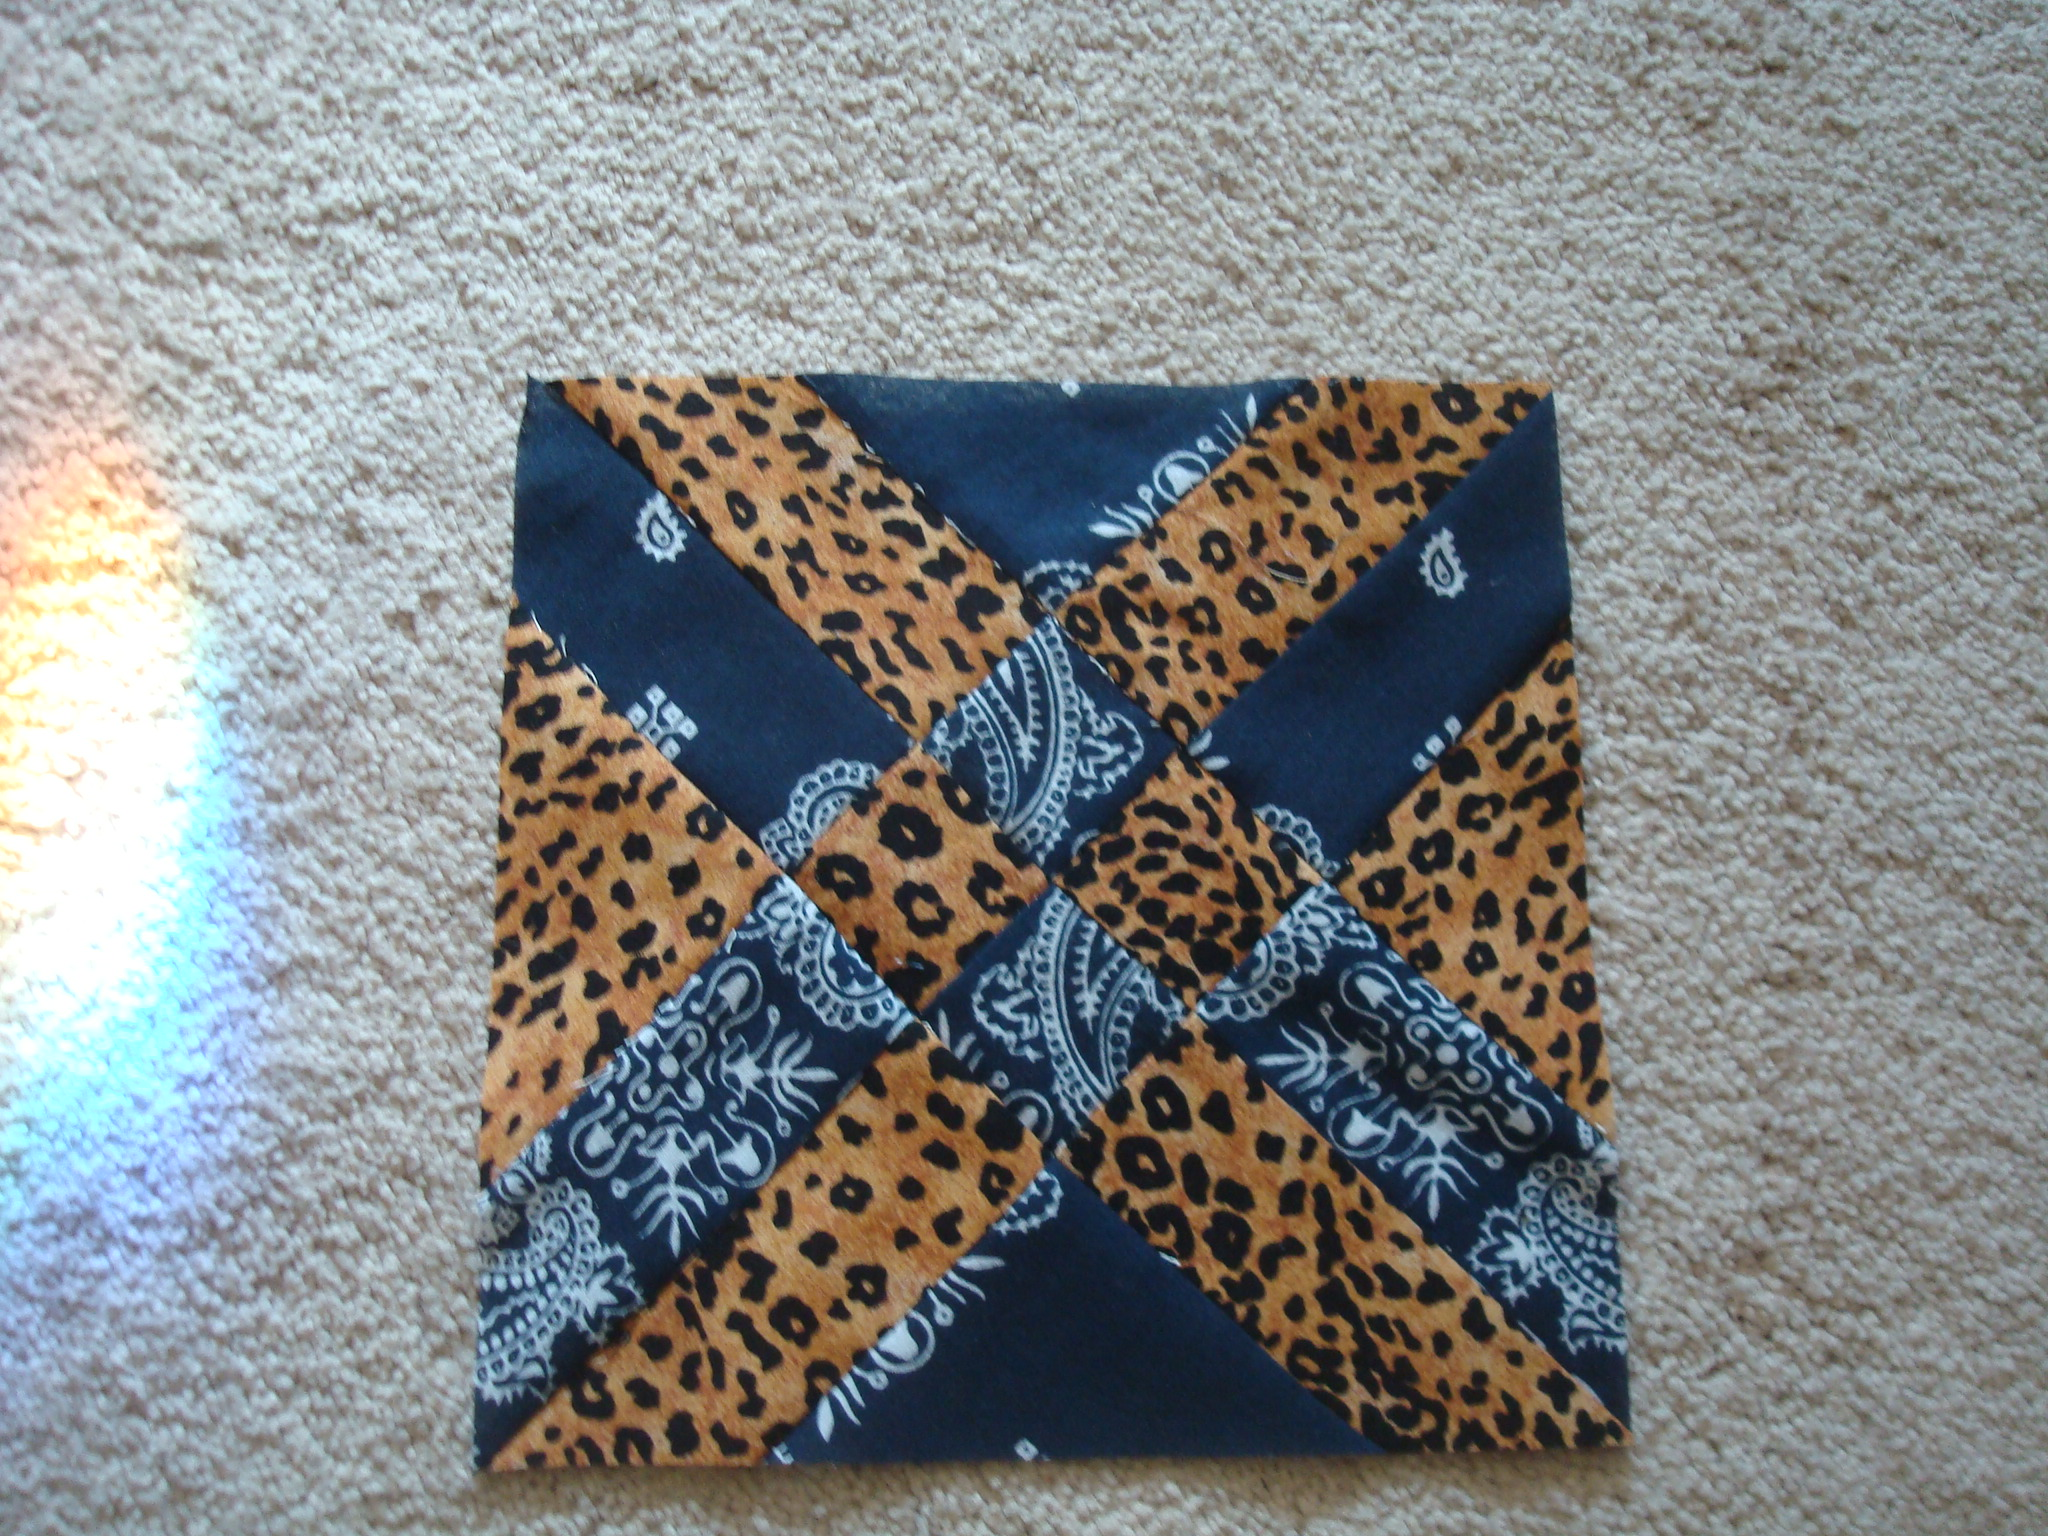 Name:  Anita's arrowhead-bandana & leopard 001.jpg